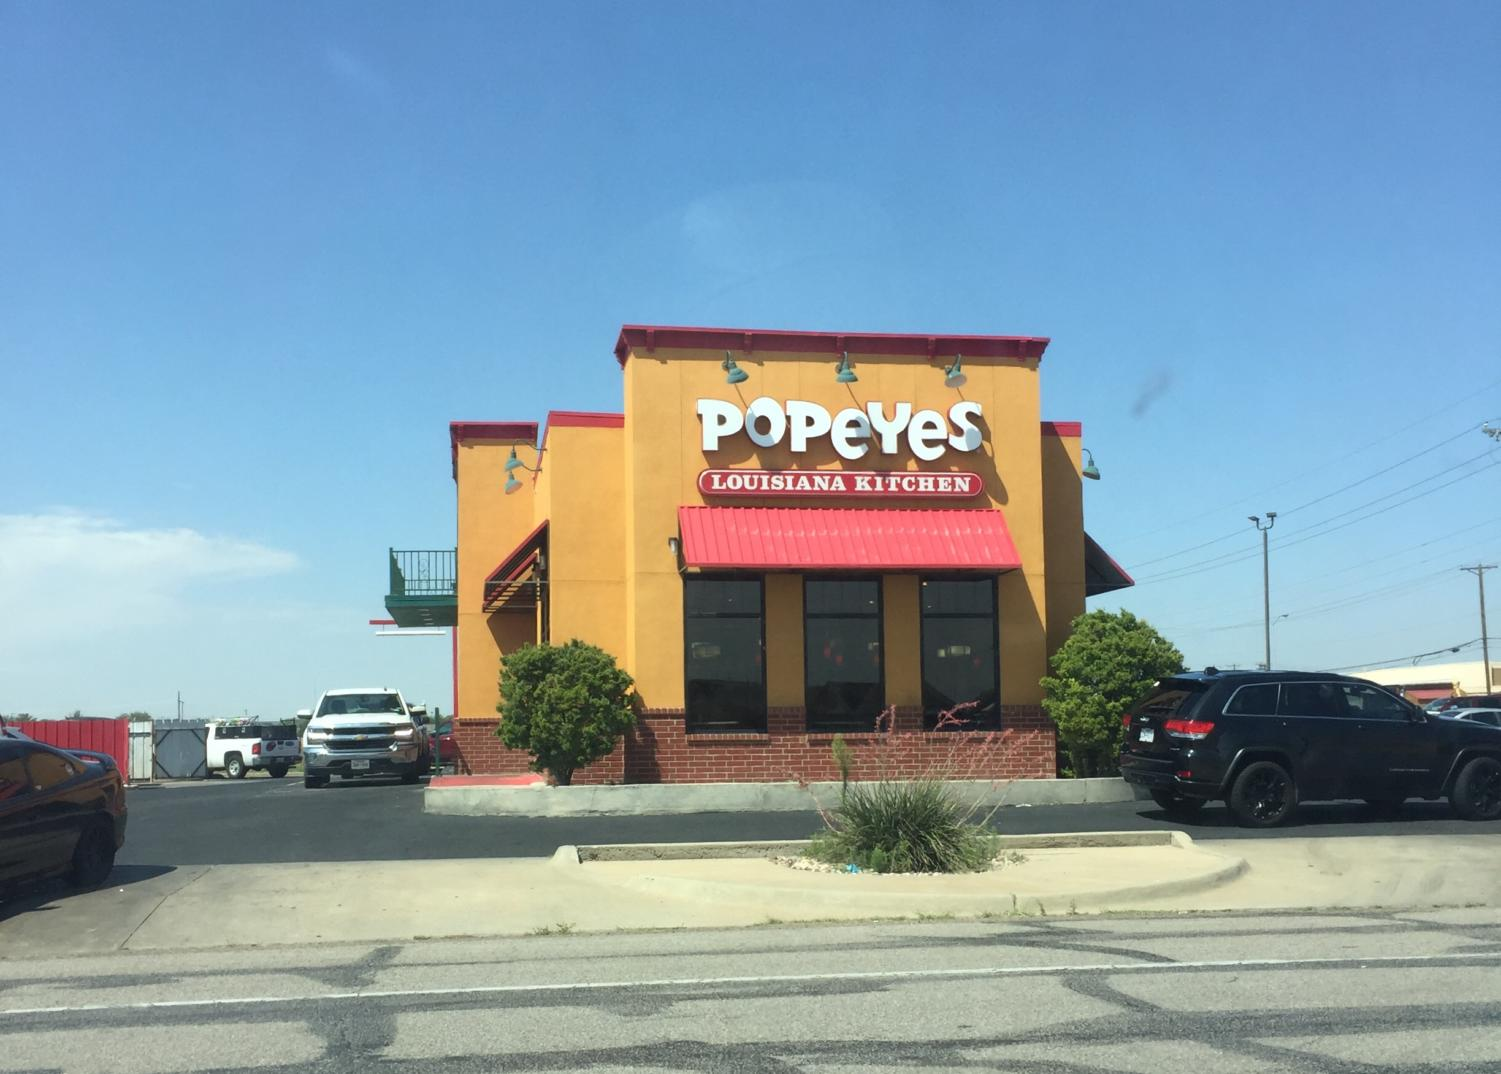 Like other Popeyes around the nation, the location on Bell sold out of chicken sandwiches.